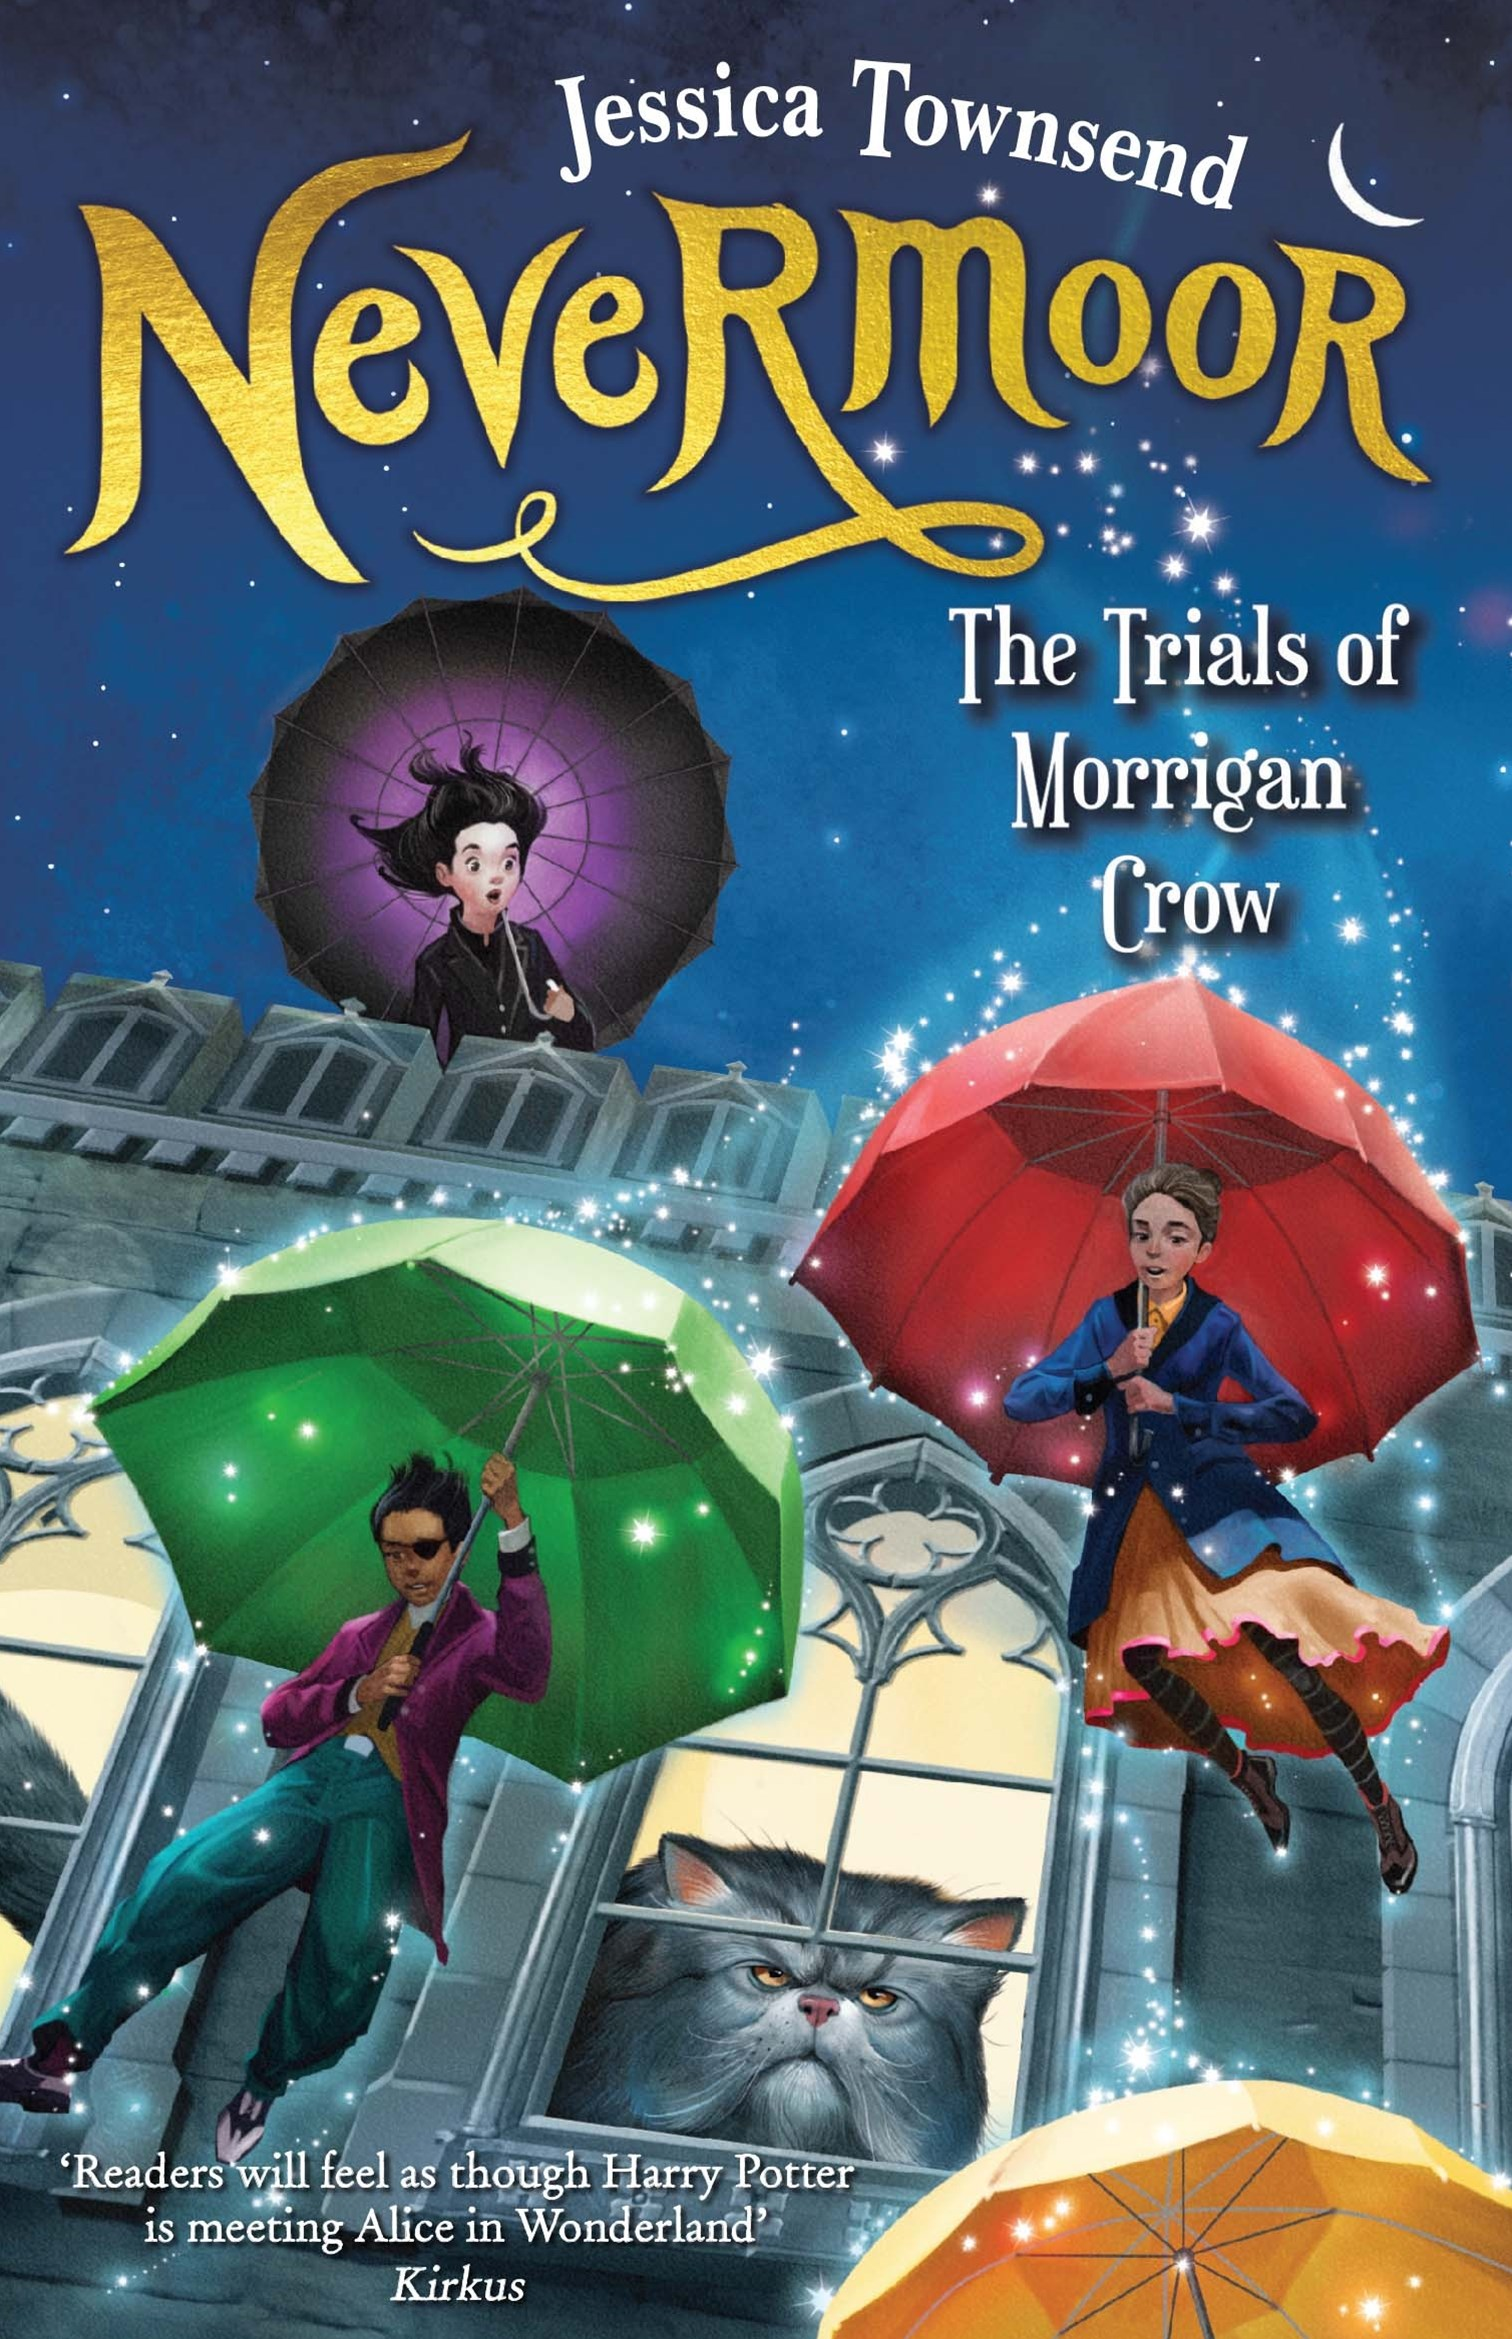 The Trials of Morrigan Crow (Nevermoor Book 1)